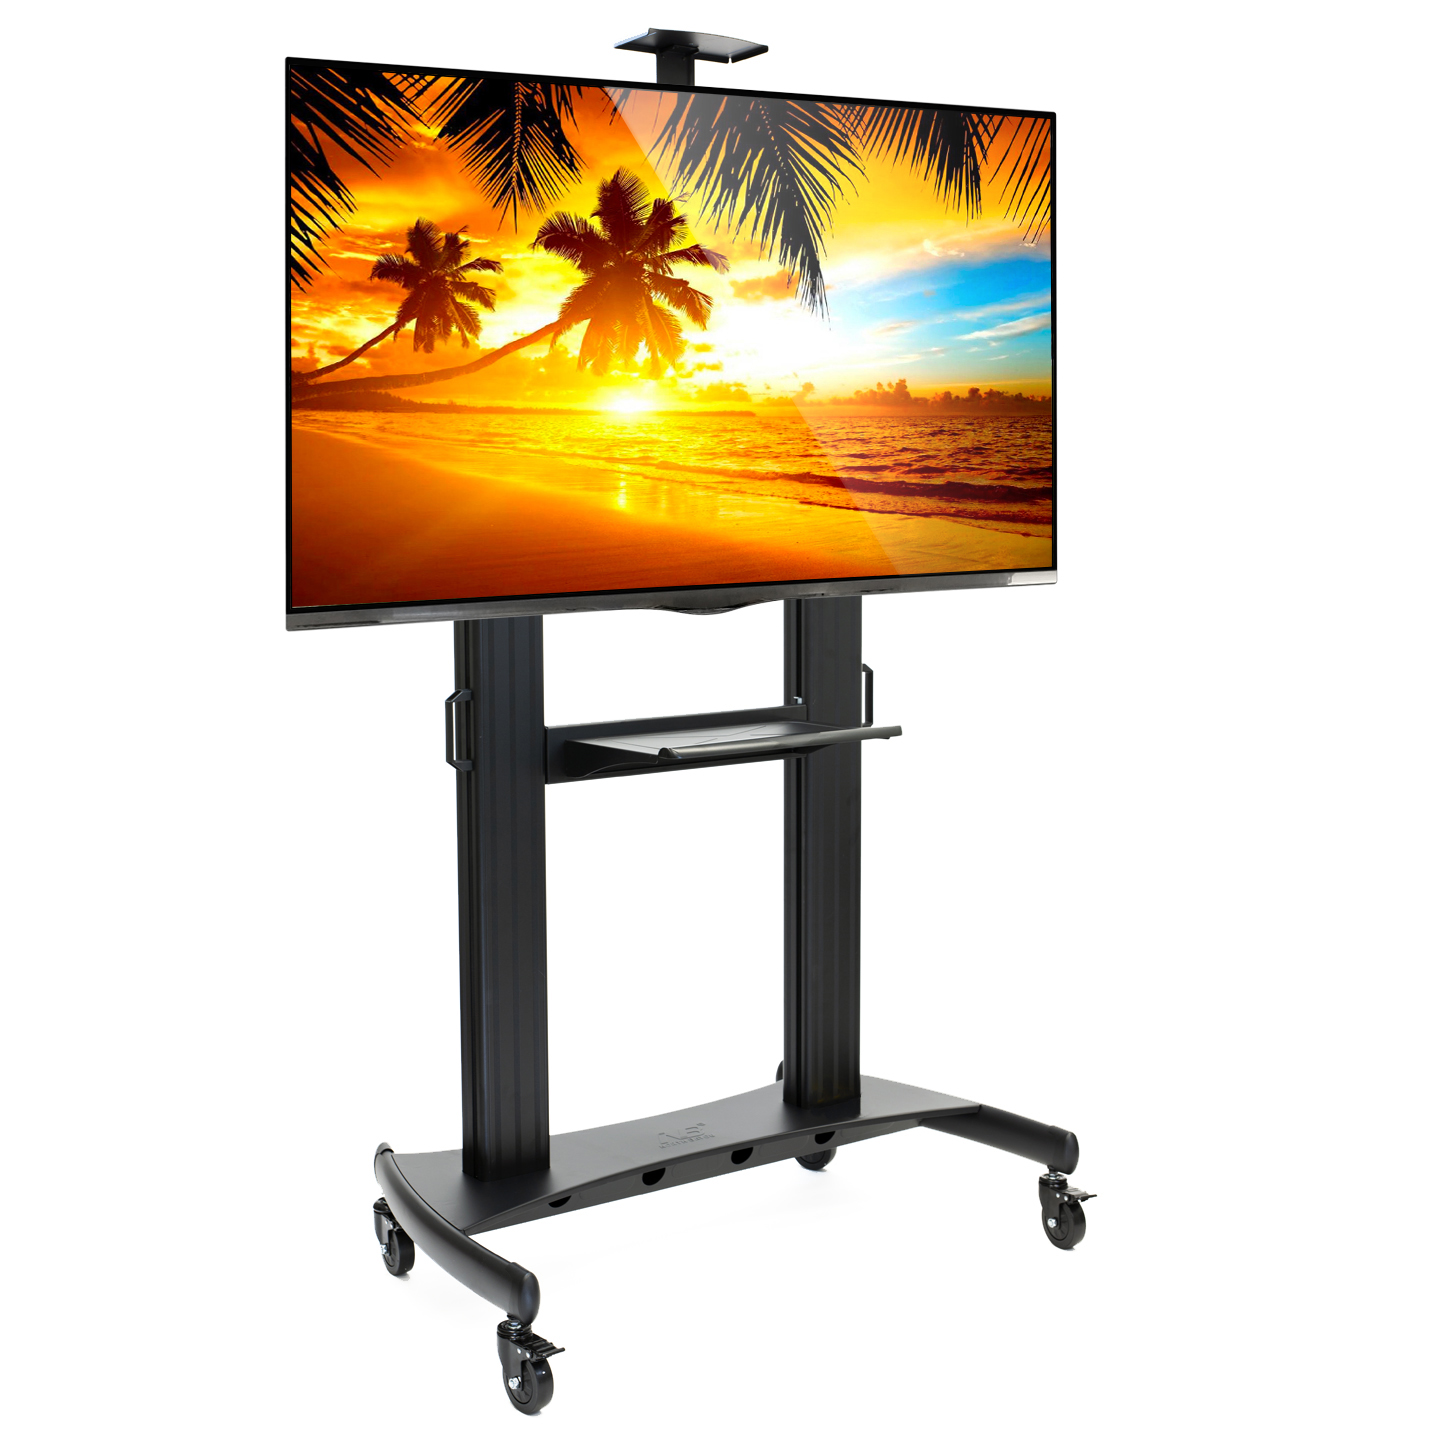 """Rolling TV Stand Mobile TV Cart for 60"""" - 100"""" Flat Screen, LED, LCD, OLED, Plasma Curved TV's - Universal Mount with Wheels"""